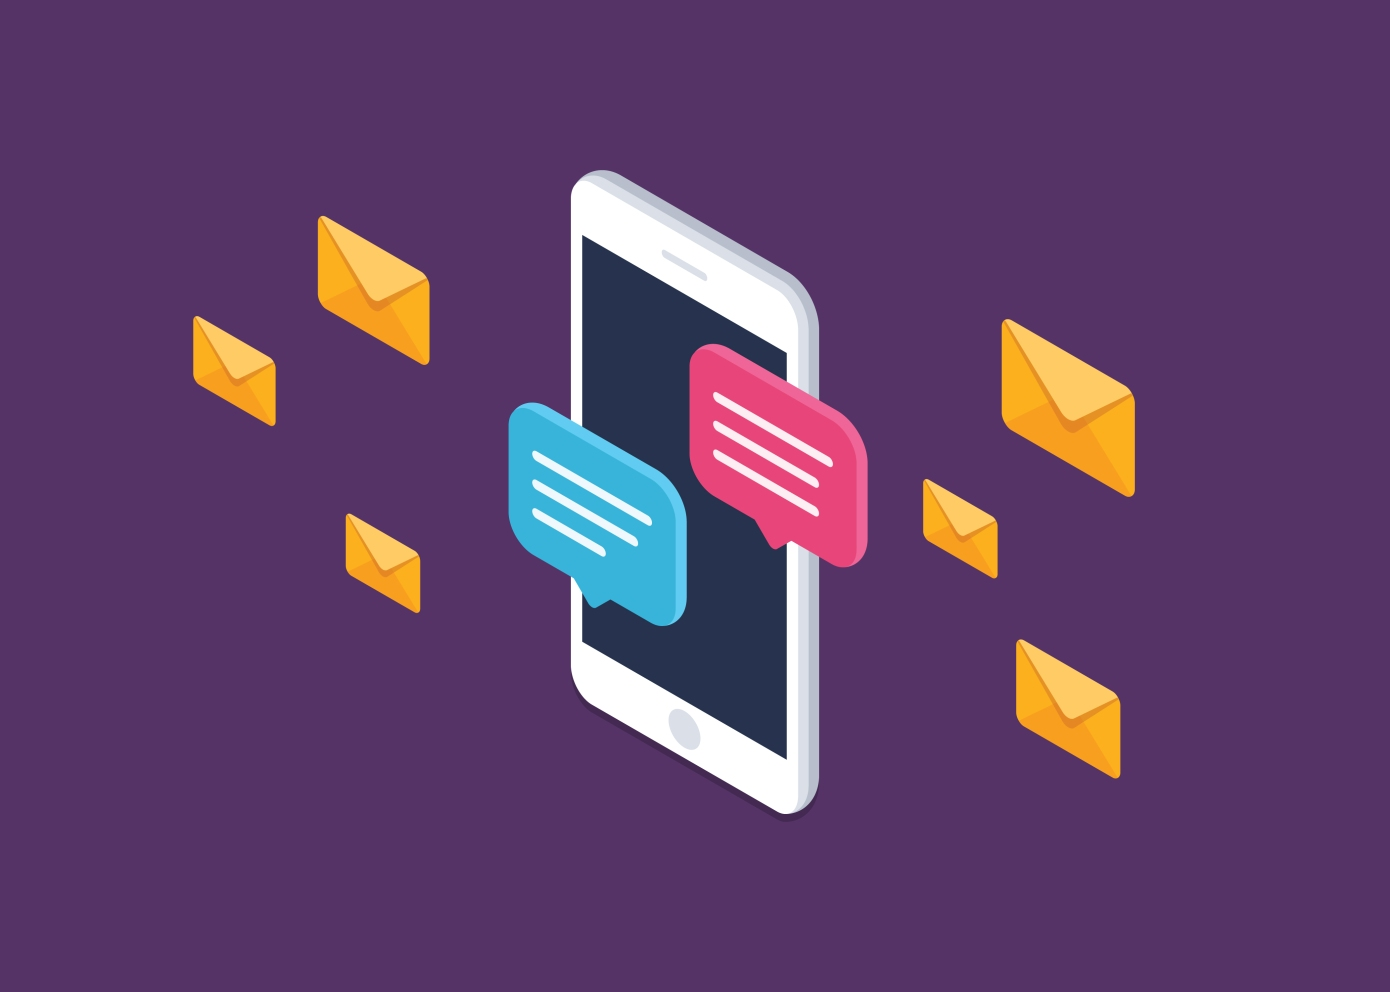 Sendbird raises $100M at a $1B+ valuation, used by over 150M app users